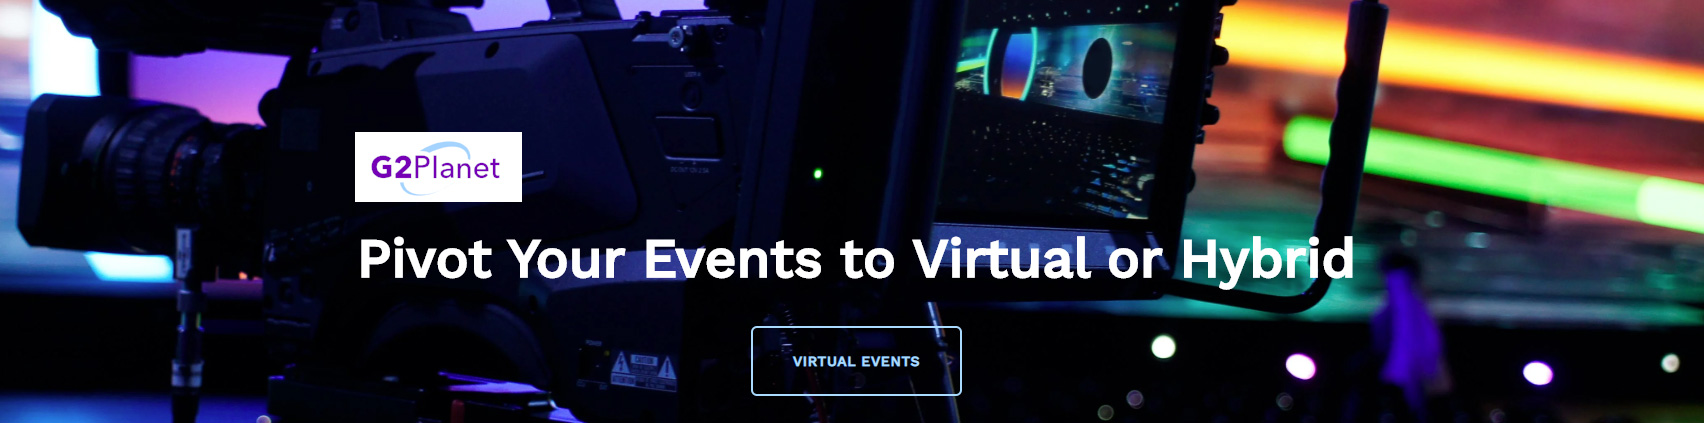 Add virtual or hybrid the smart way – by relying on an event management system